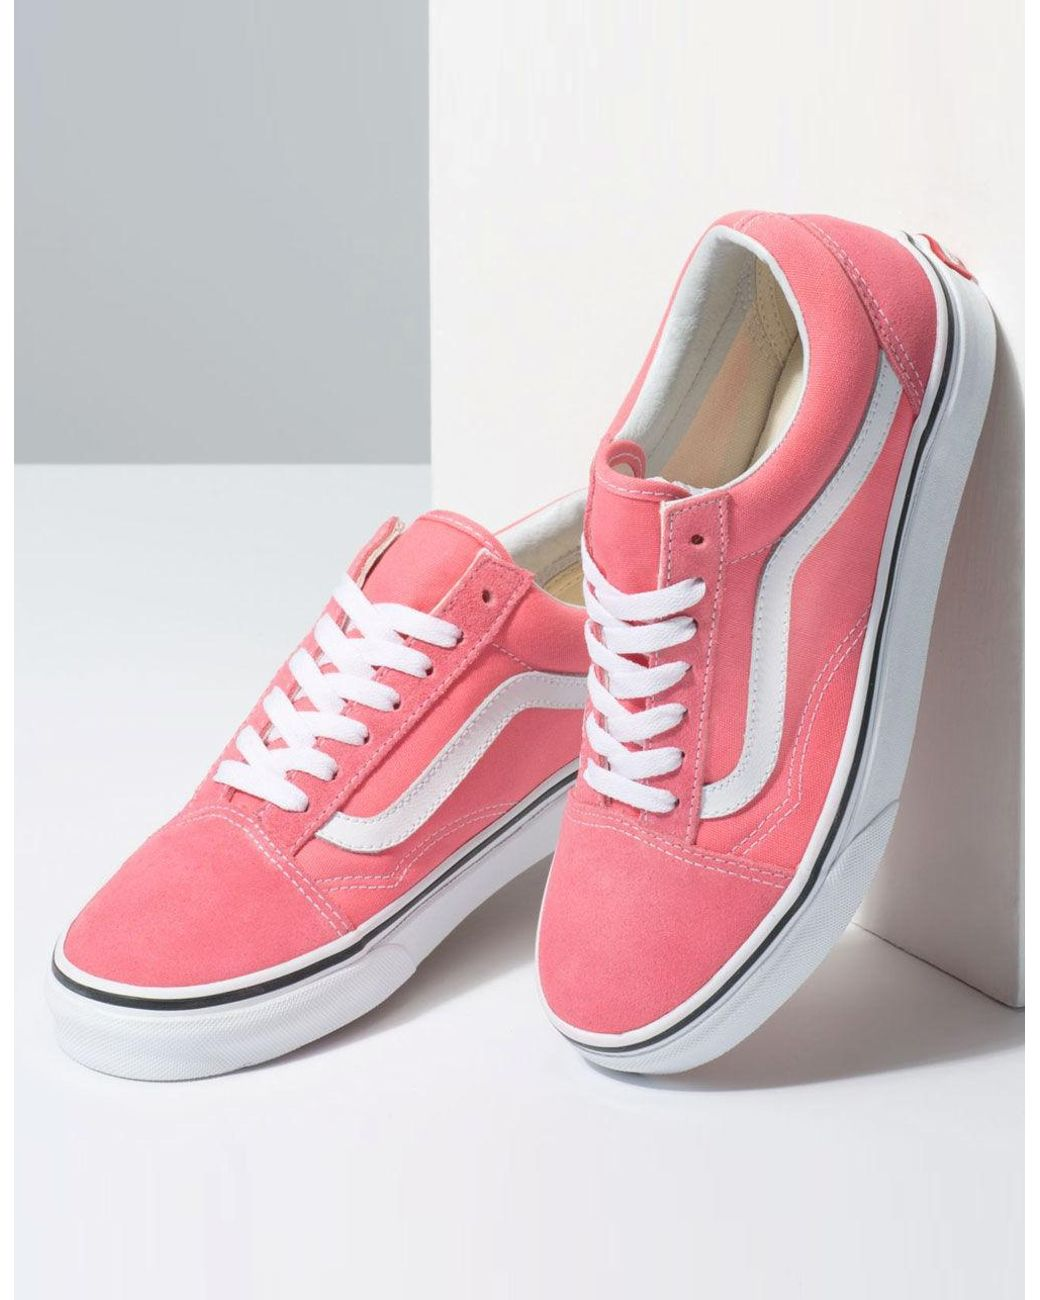 2a63644140 Lyst - Vans Old Skool Strawberry Pink   True White Womens Shoes in Pink -  Save 23%